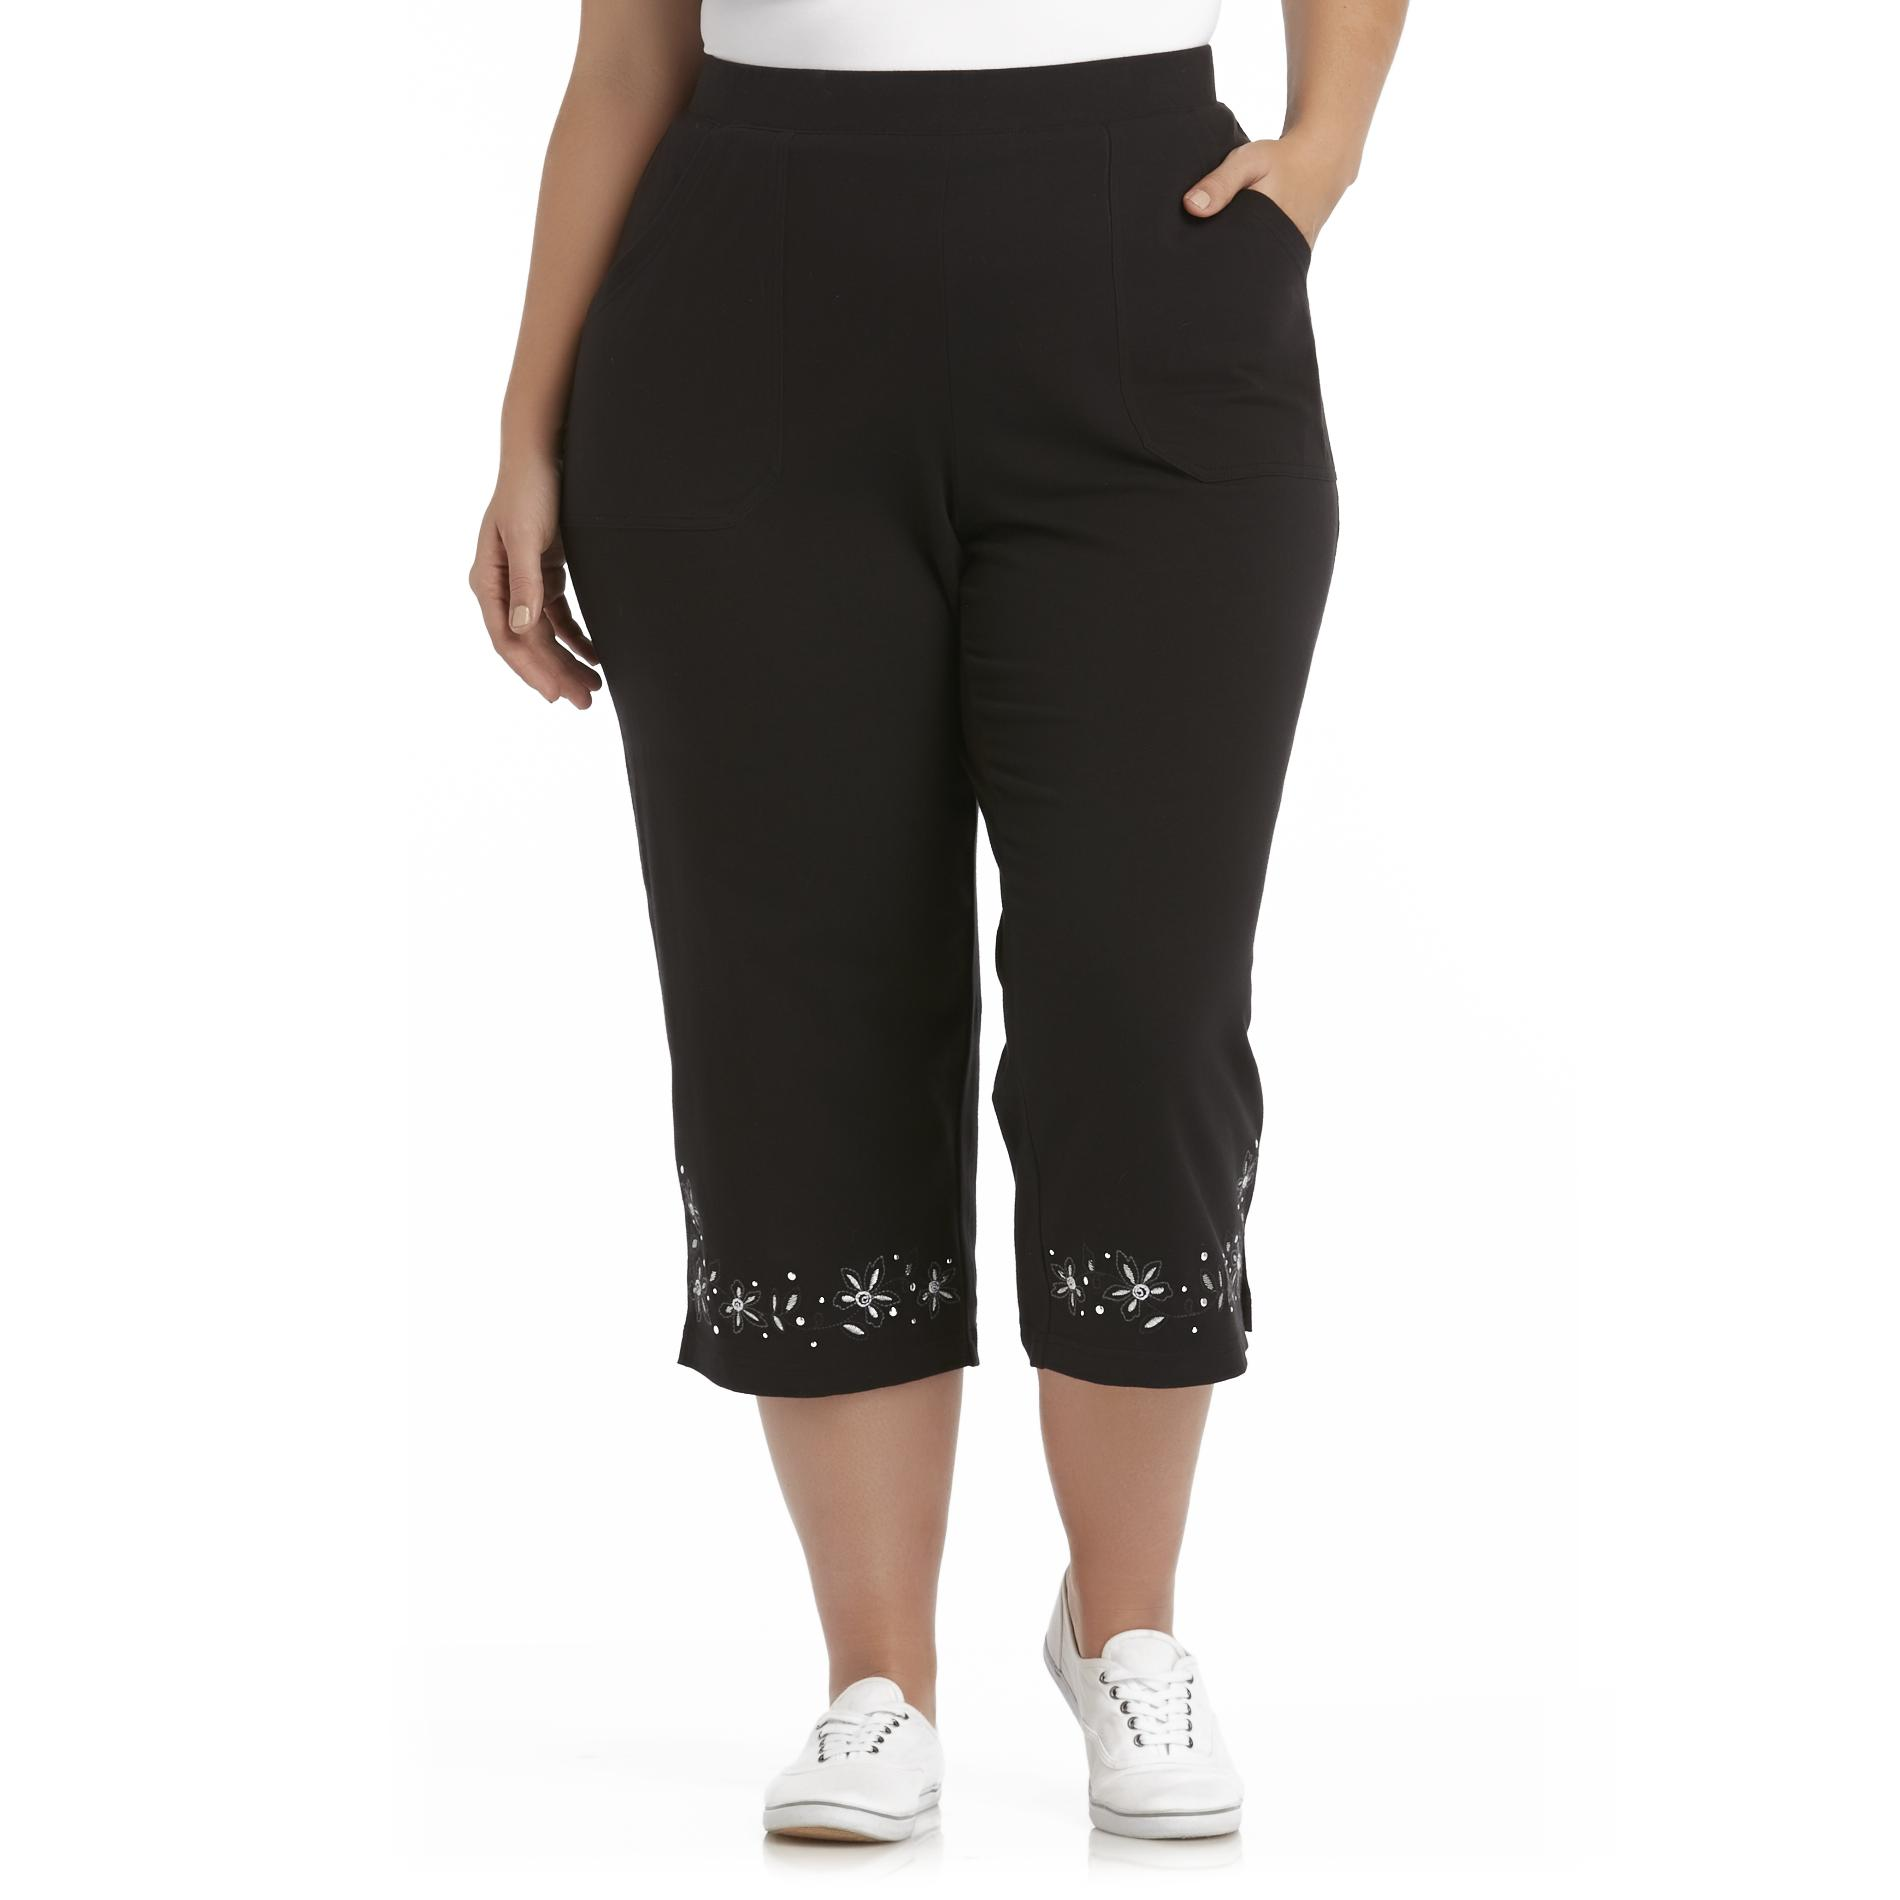 Basic Editions Women's Plus Embroidered Knit Capri Pants - Floral at Kmart.com